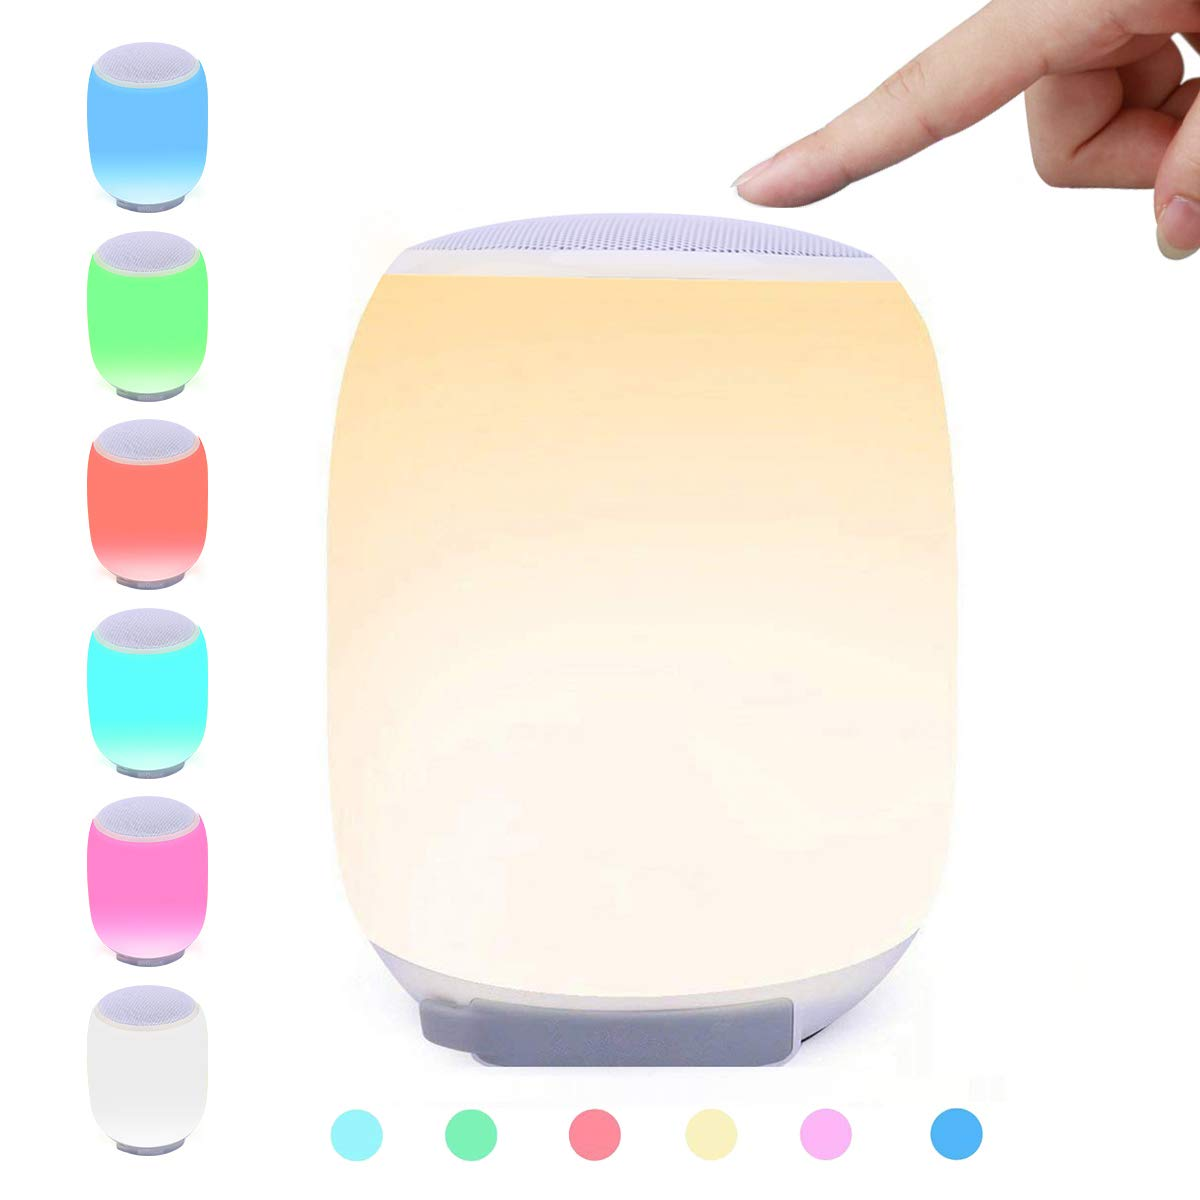 LED Bluetooth Speaker, ieGeek Portable Wireless Speaker Night Light w/ 6000mAh Power Bank, Color Changing Bedside Lamp Table Lamp Smart Touch Mood Lamp MP3 Player Waterproof for Party/Bedroom/Outdoor